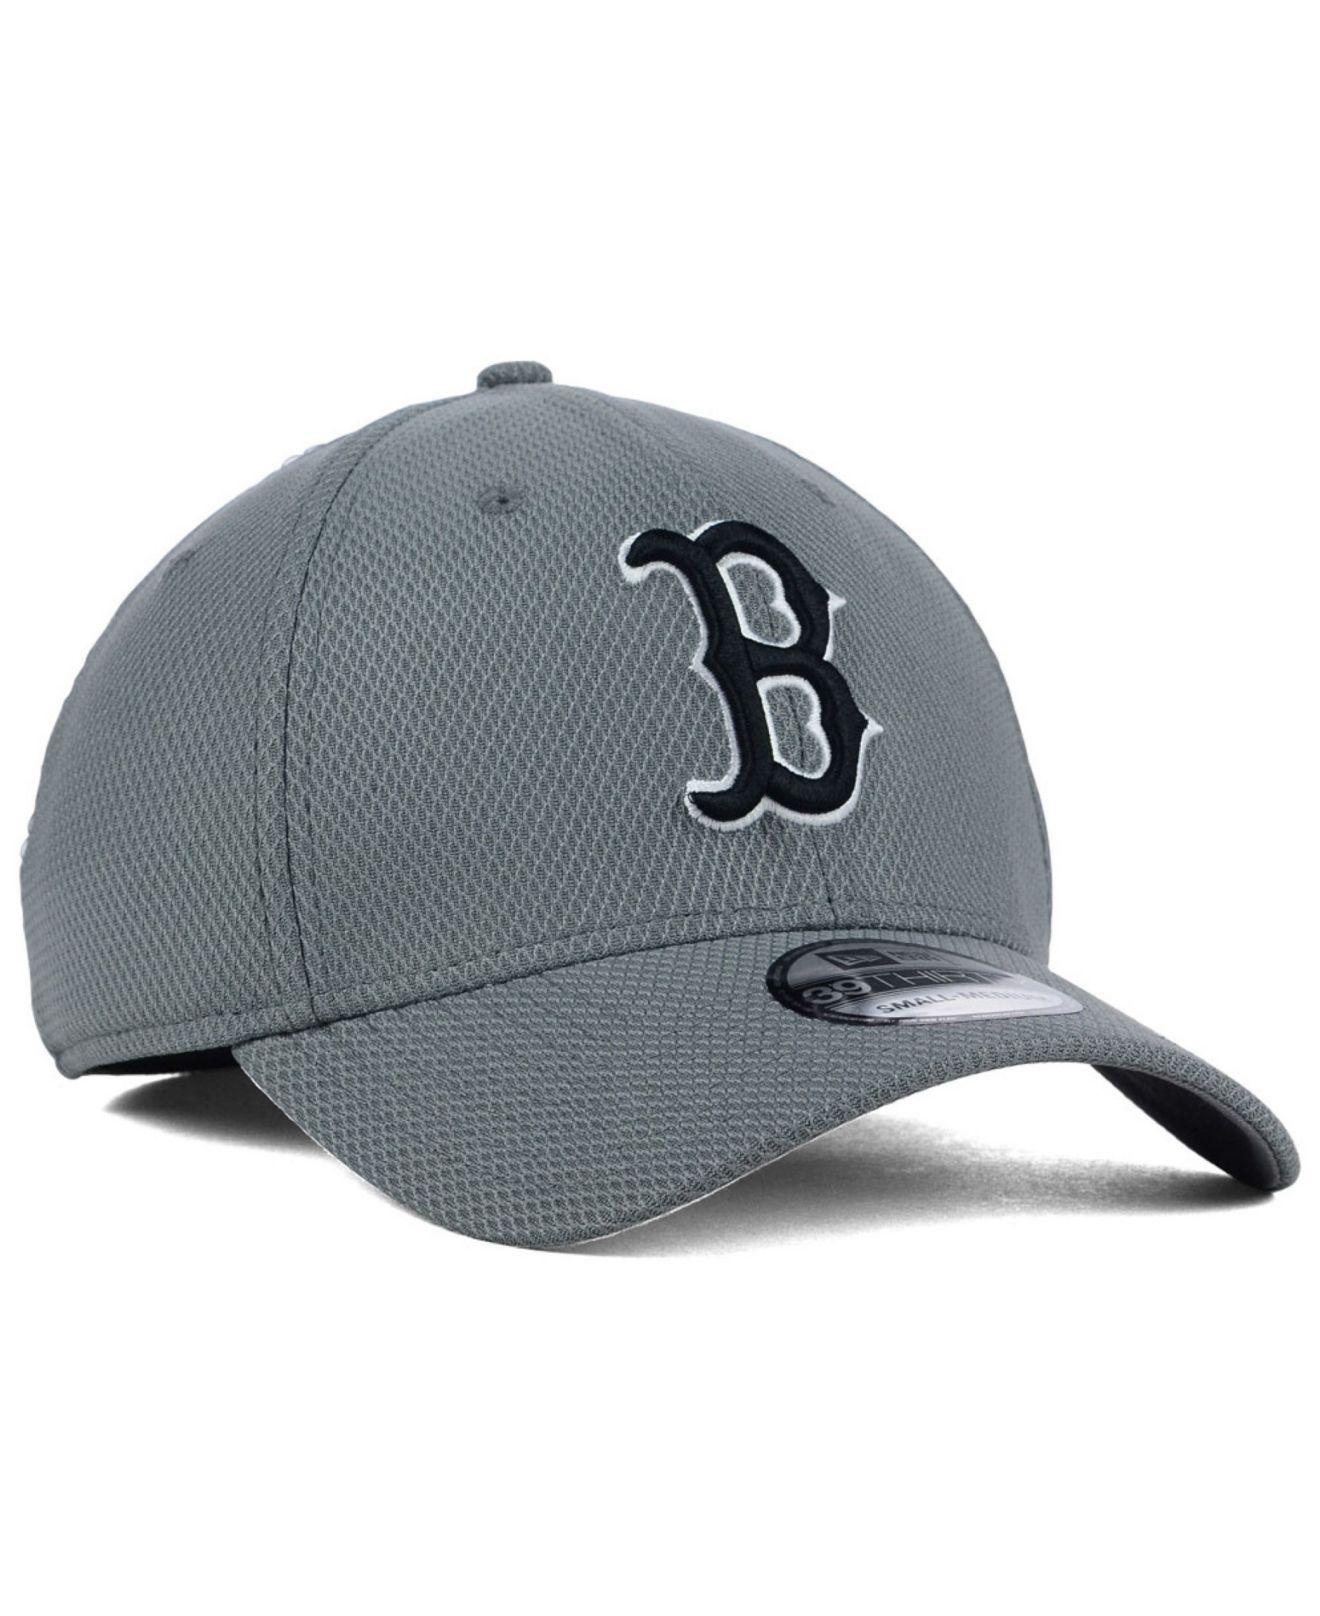 online store 8bc34 ee364 ... clearance lyst ktz boston red sox diamond era gray black white 39thirty  cap ca76d ca782